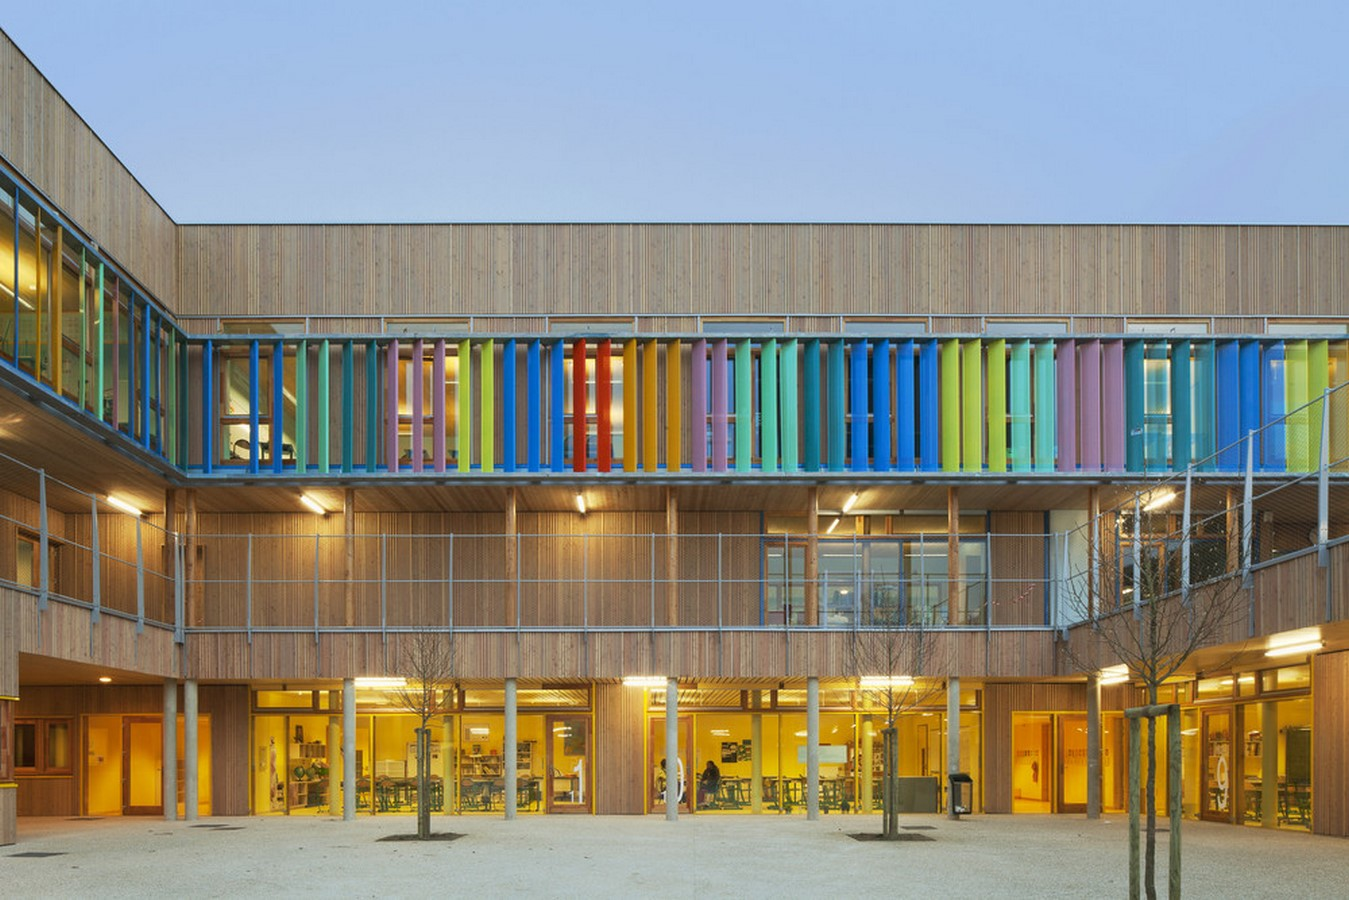 15 Educational Buildings that Architects Should Know About-Groupe Scolaire Pasteur - Sheet2